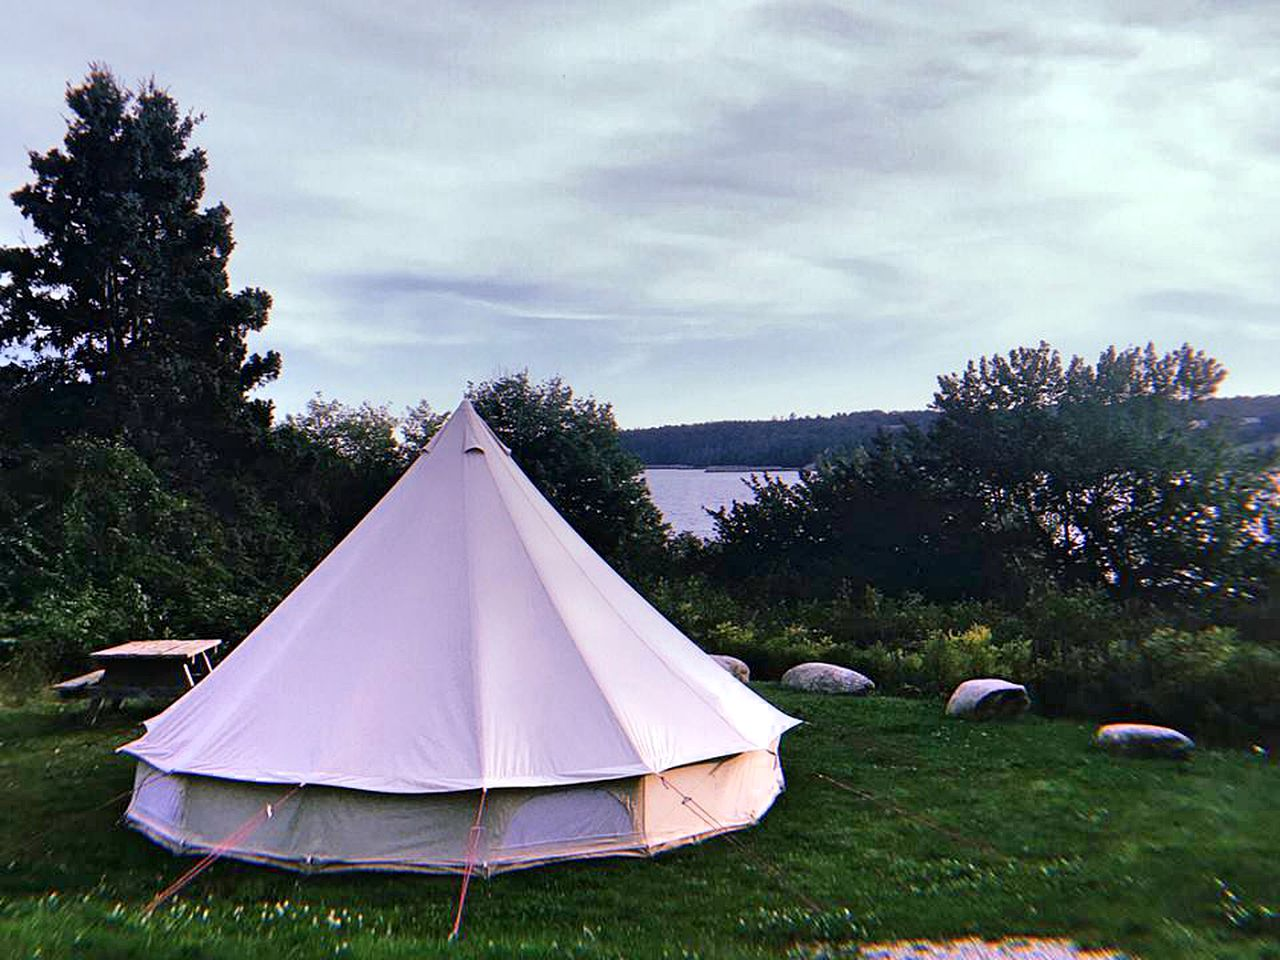 Tents (Chester, Nova Scotia, Canada)